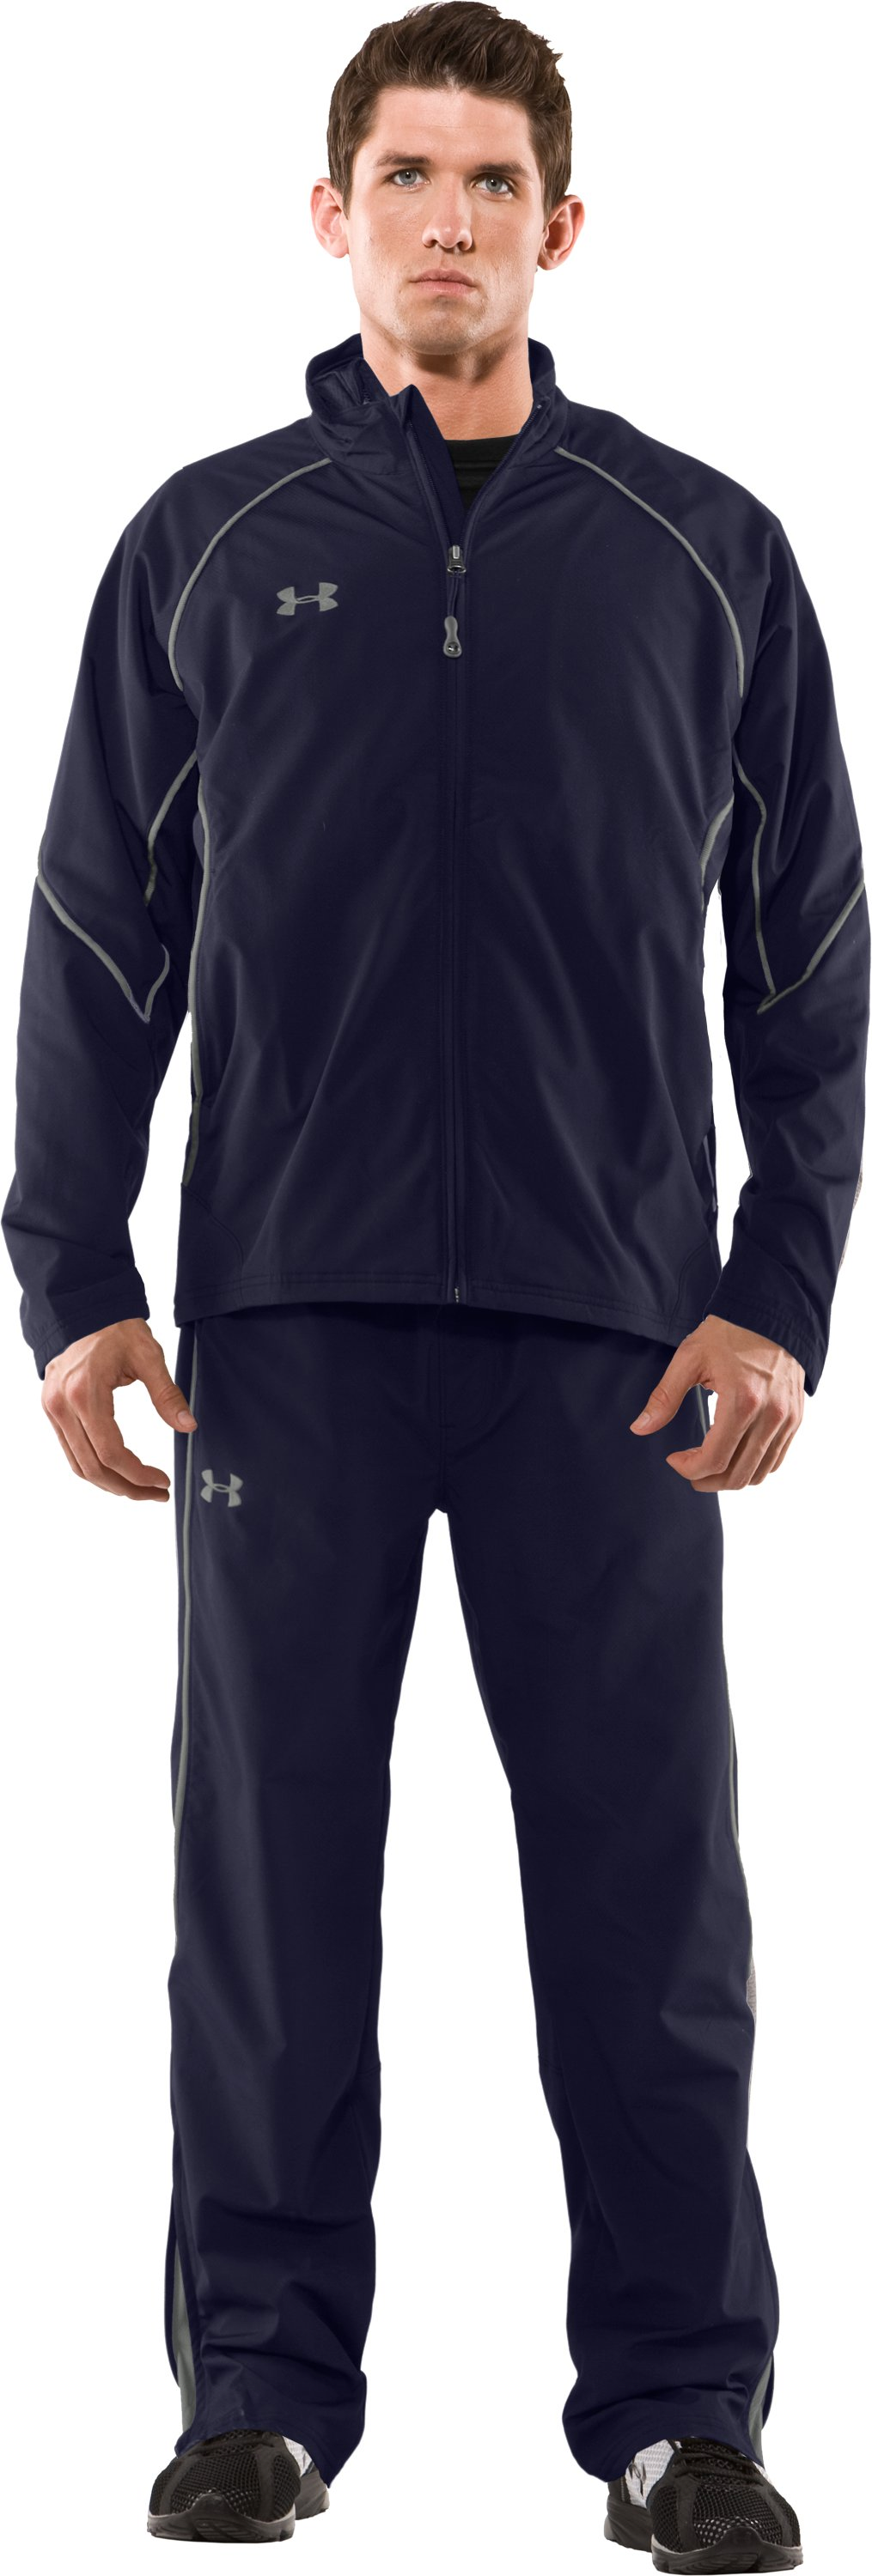 Men's UA Hockey Warm-Up Jacket, Midnight Navy, zoomed image